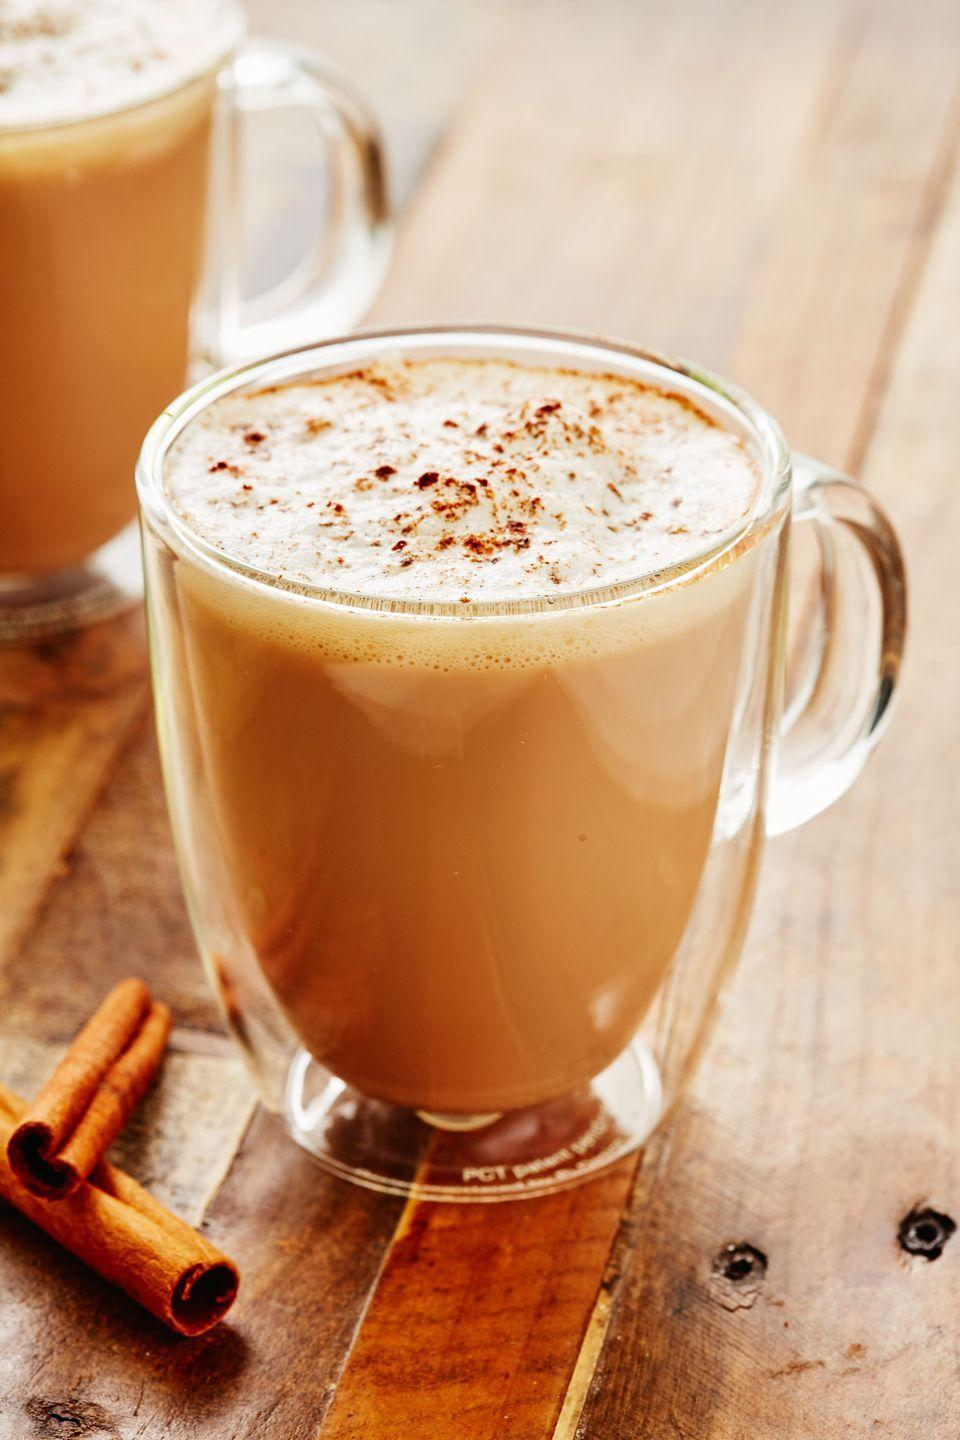 """<p>Warming, slightly spiced, and absolutely delicious, this chai will become your mid-afternoon go-to. </p><p>Get the recipe from <a href=""""https://www.delish.com/cooking/recipe-ideas/a28899368/how-to-make-chai-latte-recipe/"""" rel=""""nofollow noopener"""" target=""""_blank"""" data-ylk=""""slk:Delish"""" class=""""link rapid-noclick-resp"""">Delish</a>.</p>"""